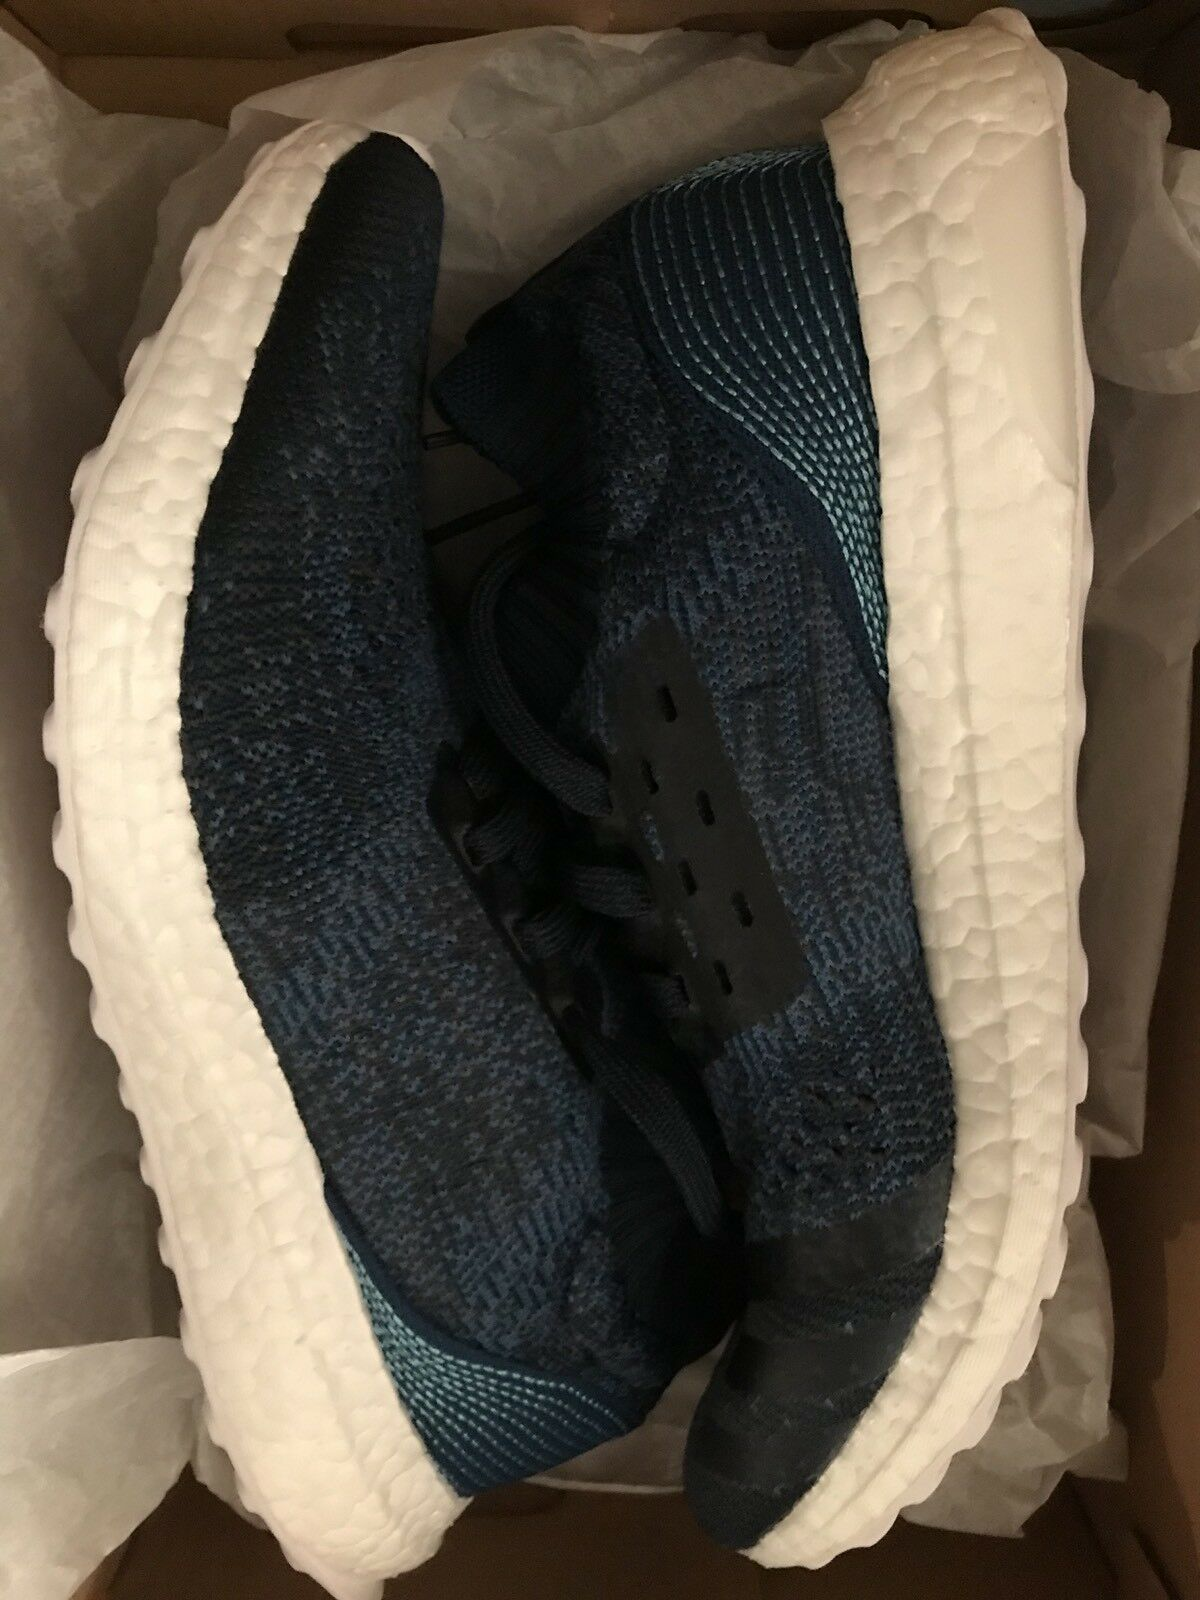 Adidas UltraBOOST Boost Uncaged Parley Night Navy Blue US US US Uomo size 9 BY3057 a54744